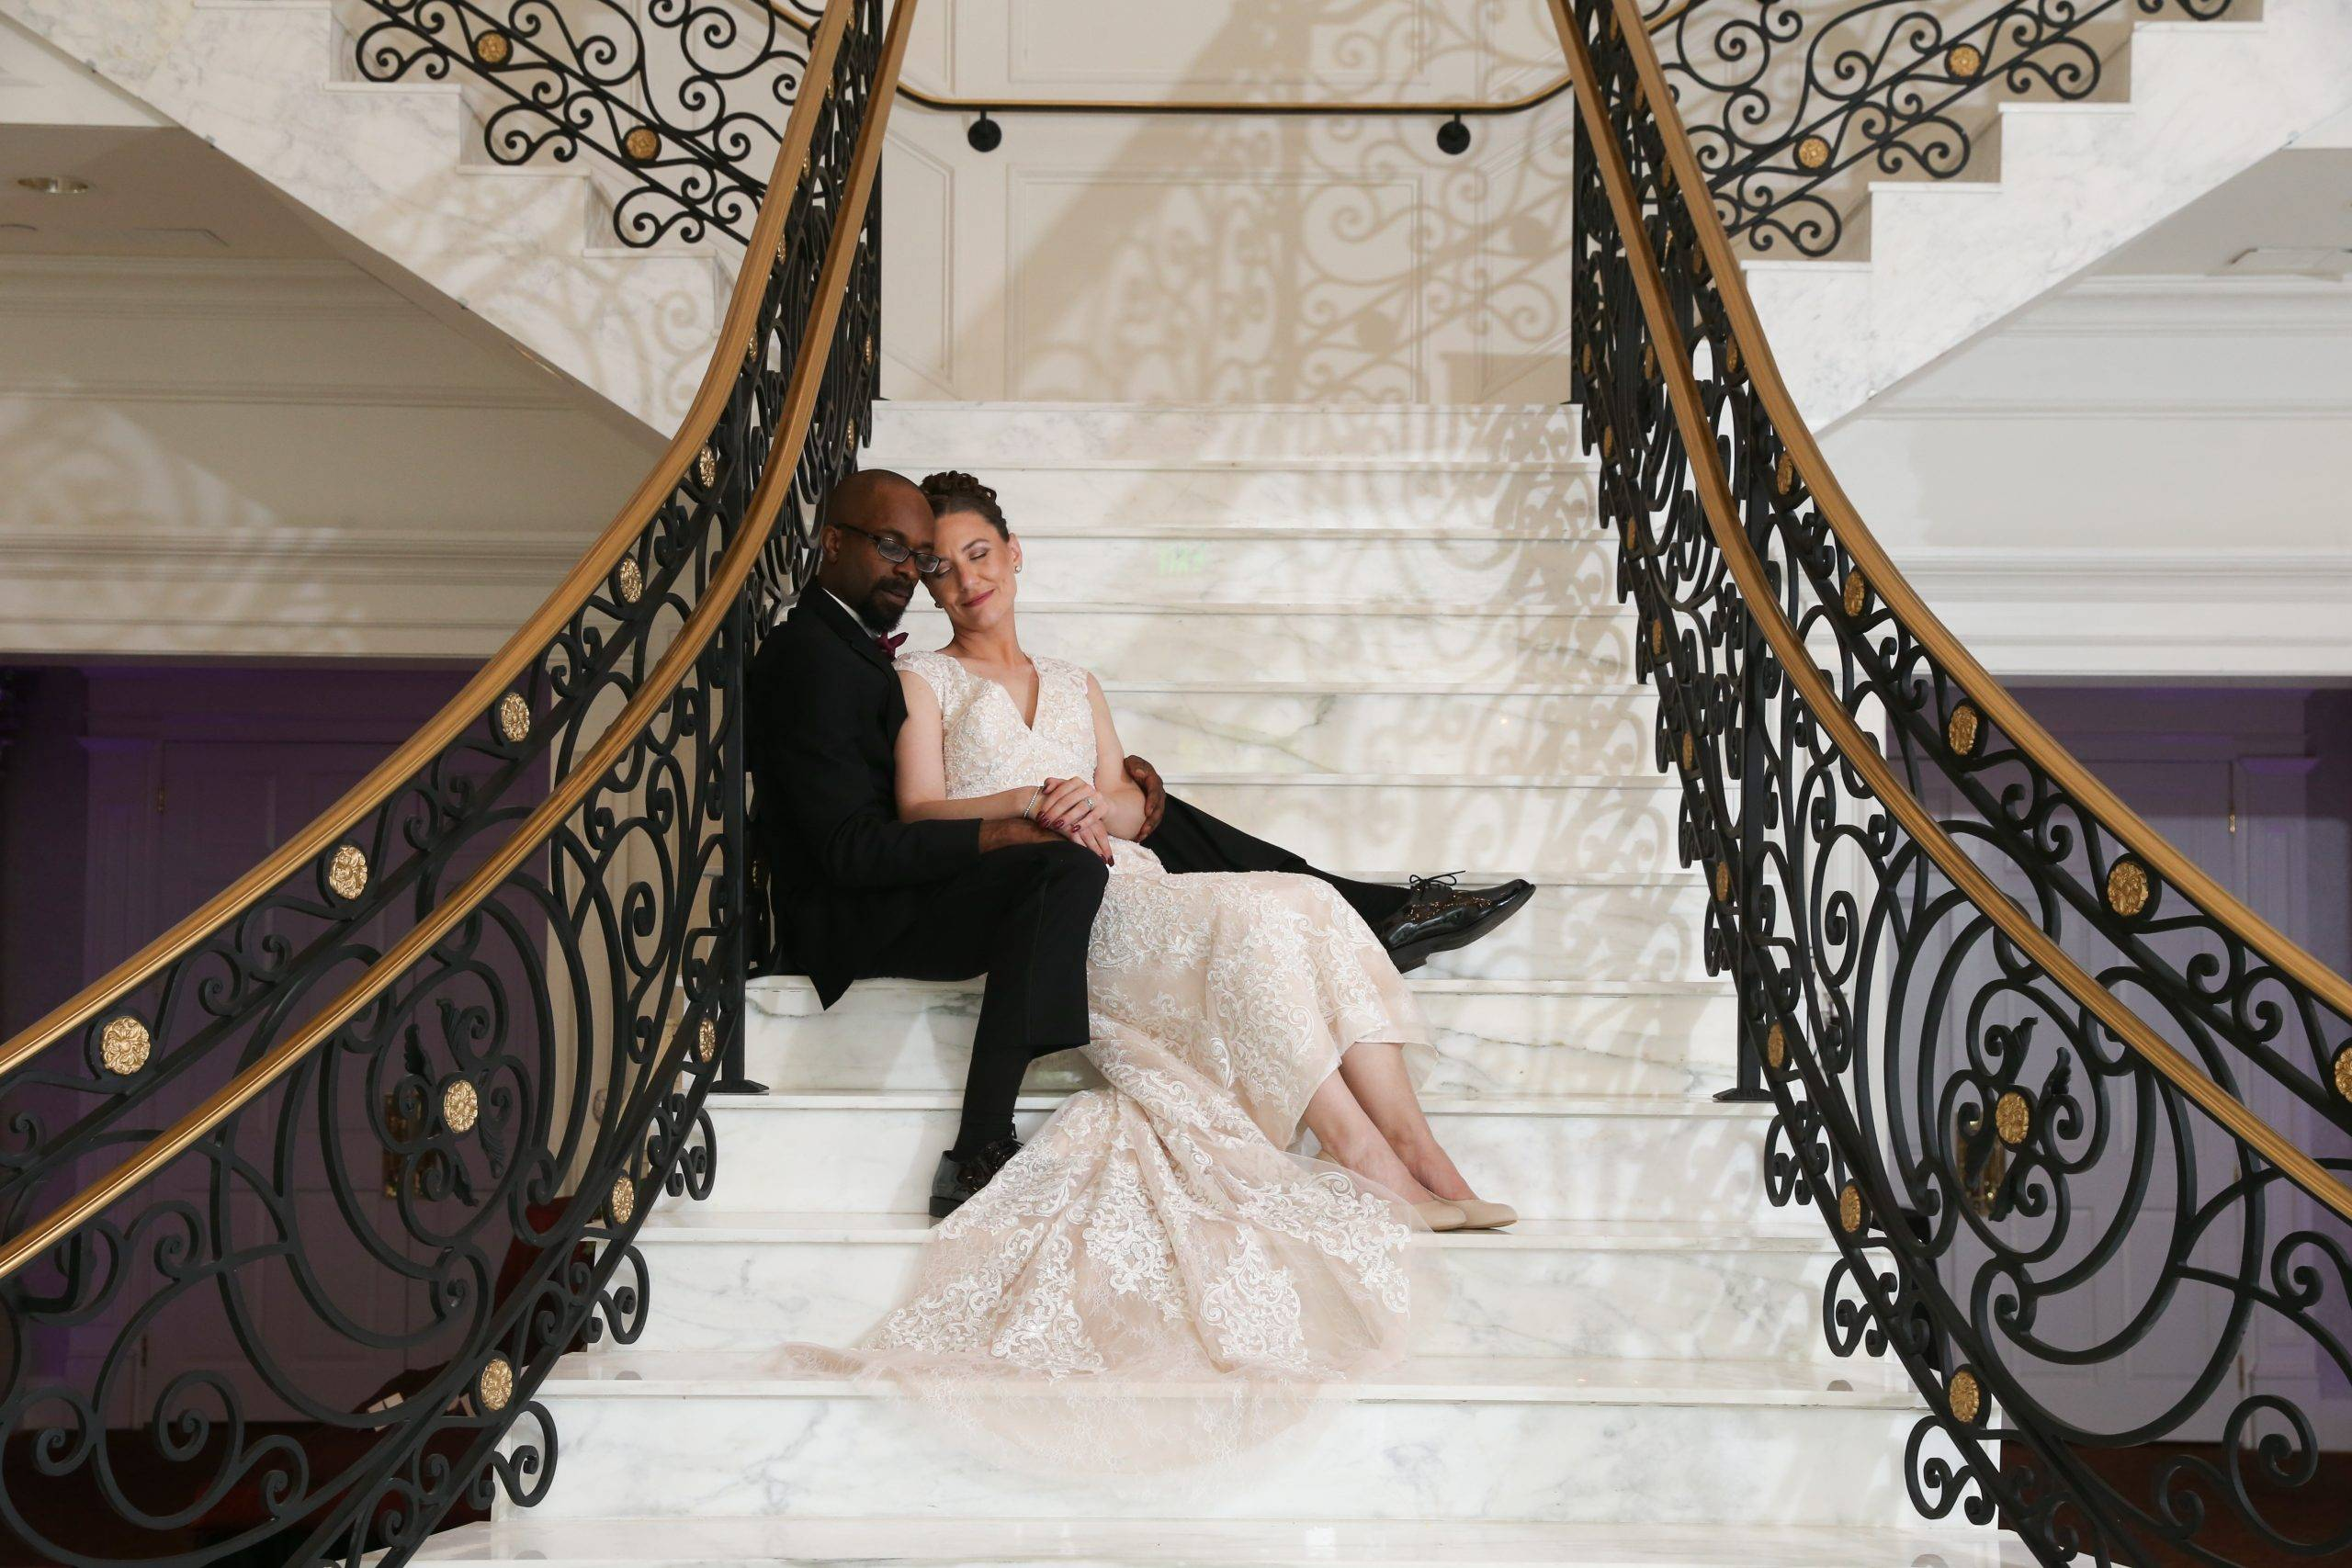 Meadow Wood bride and groom relaxing on grand staircase